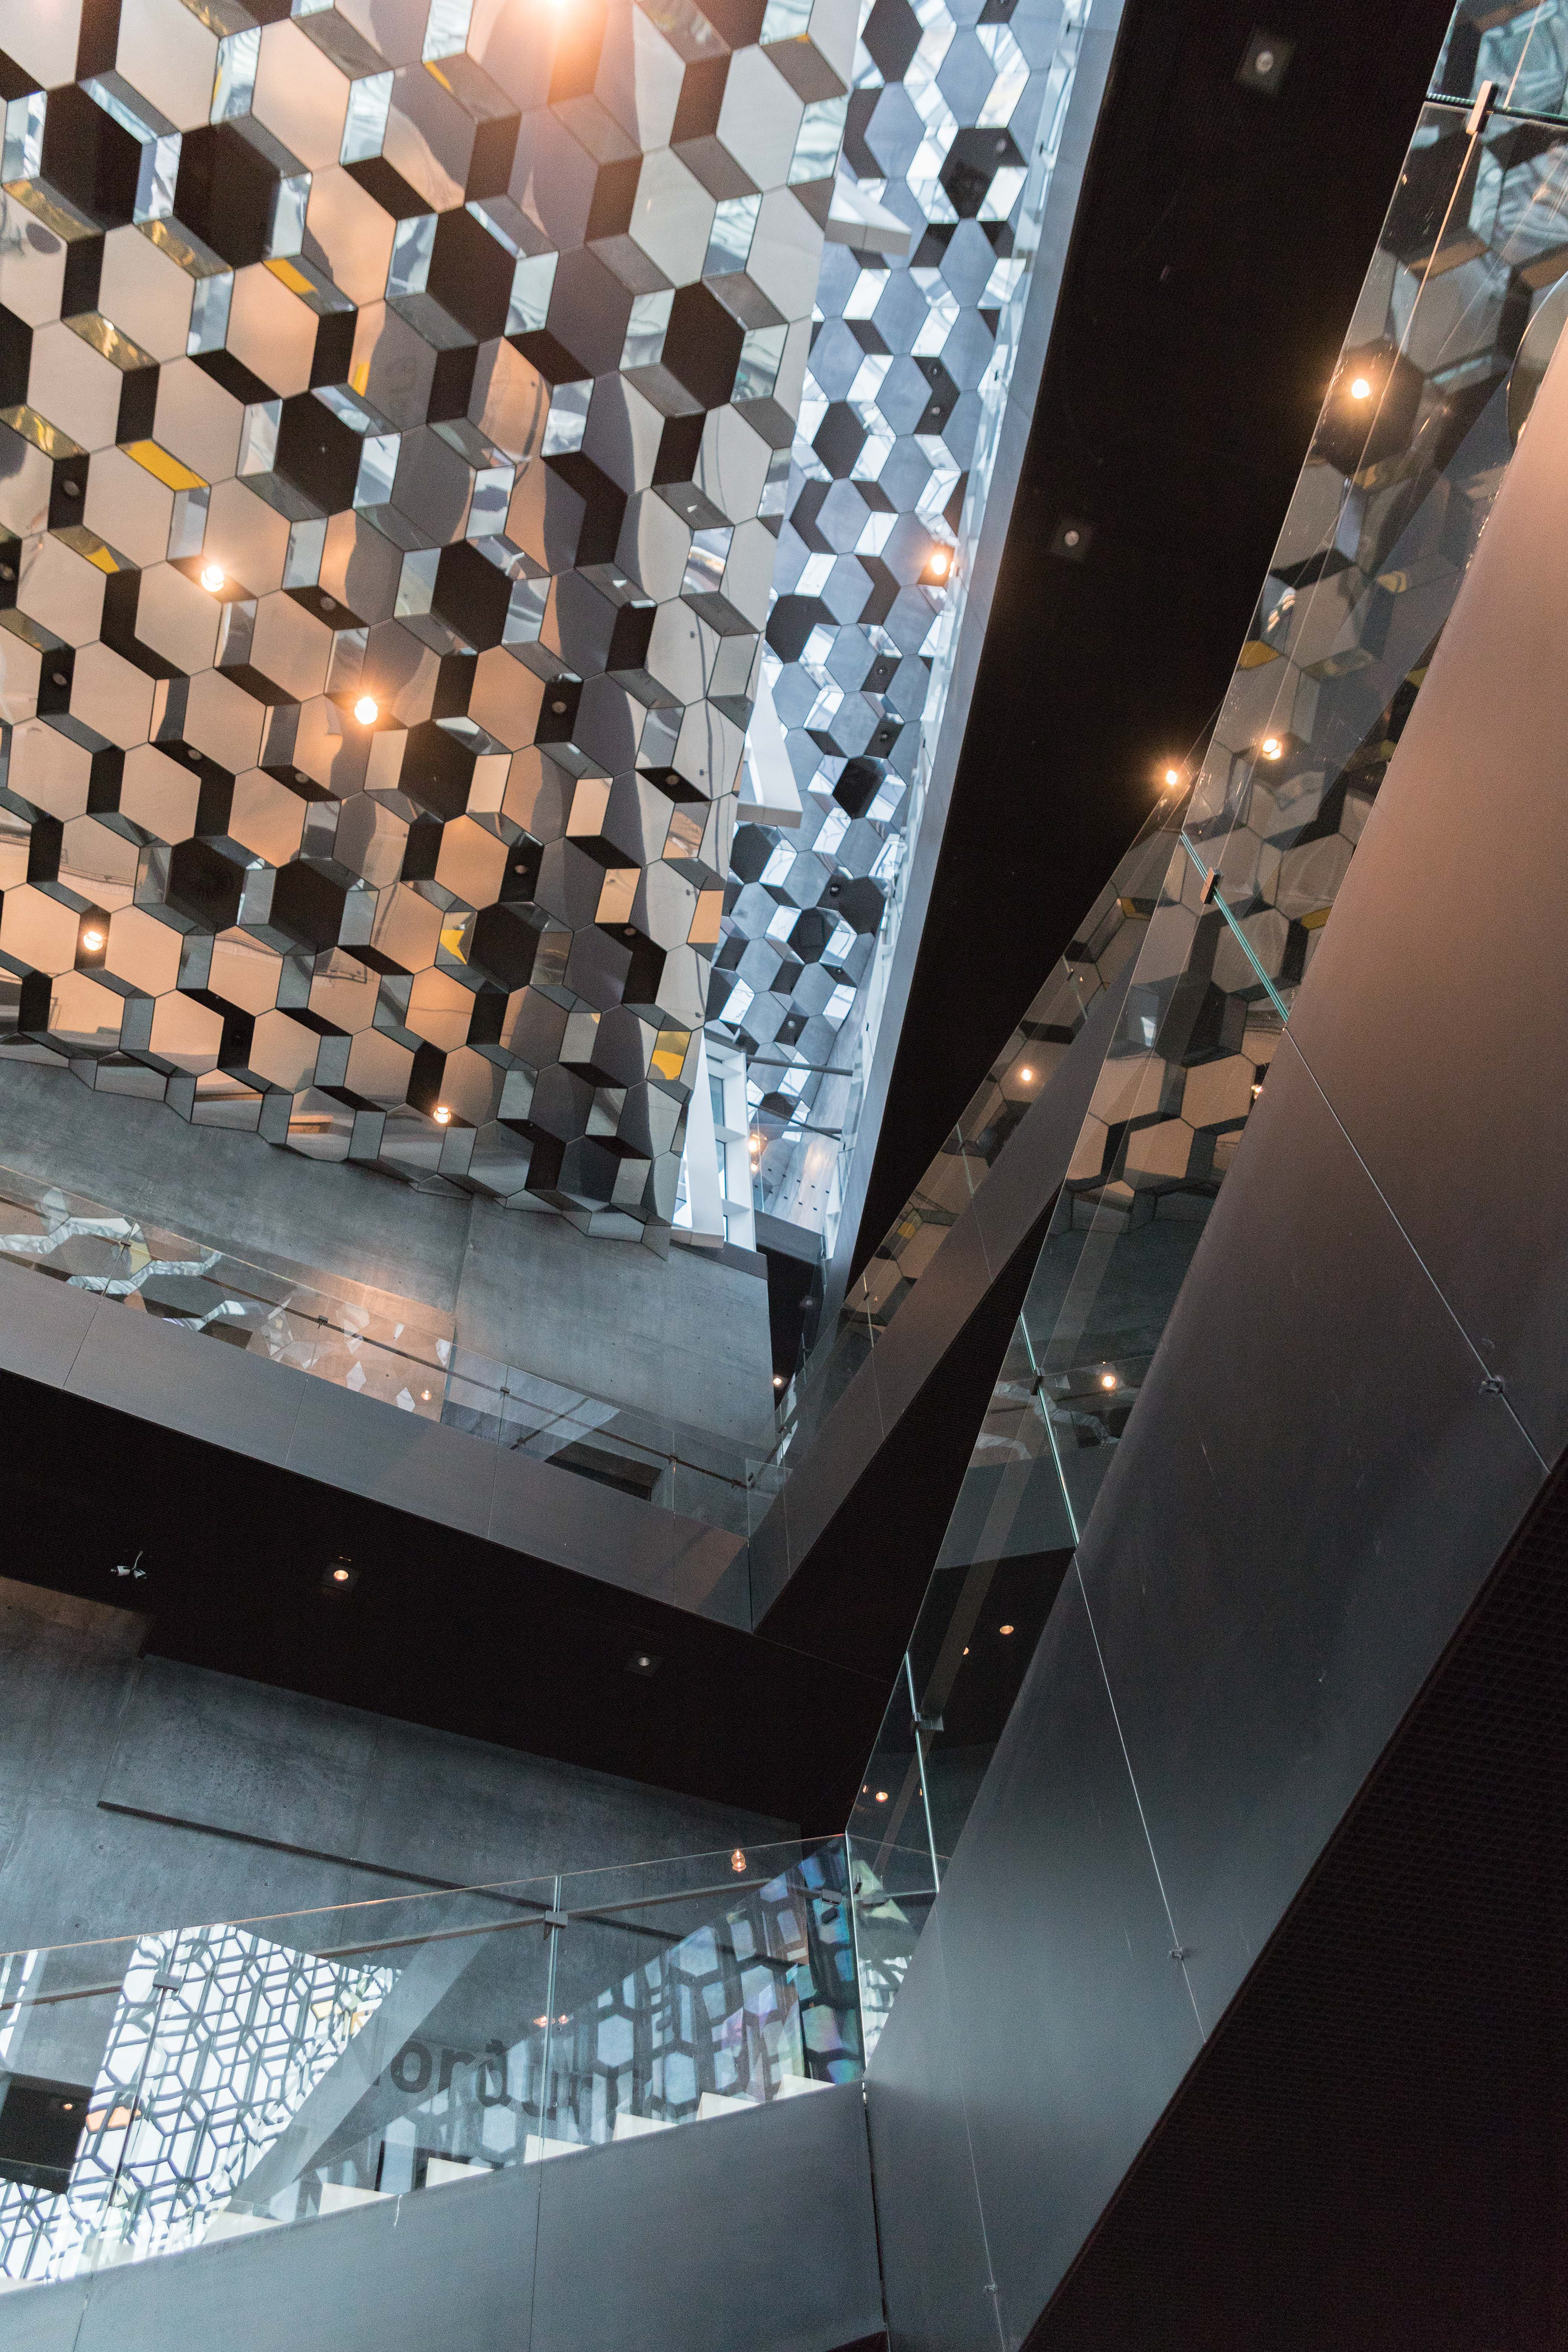 Architectural Photography: Harpa Concert Hall in Reykjavík, Iceland